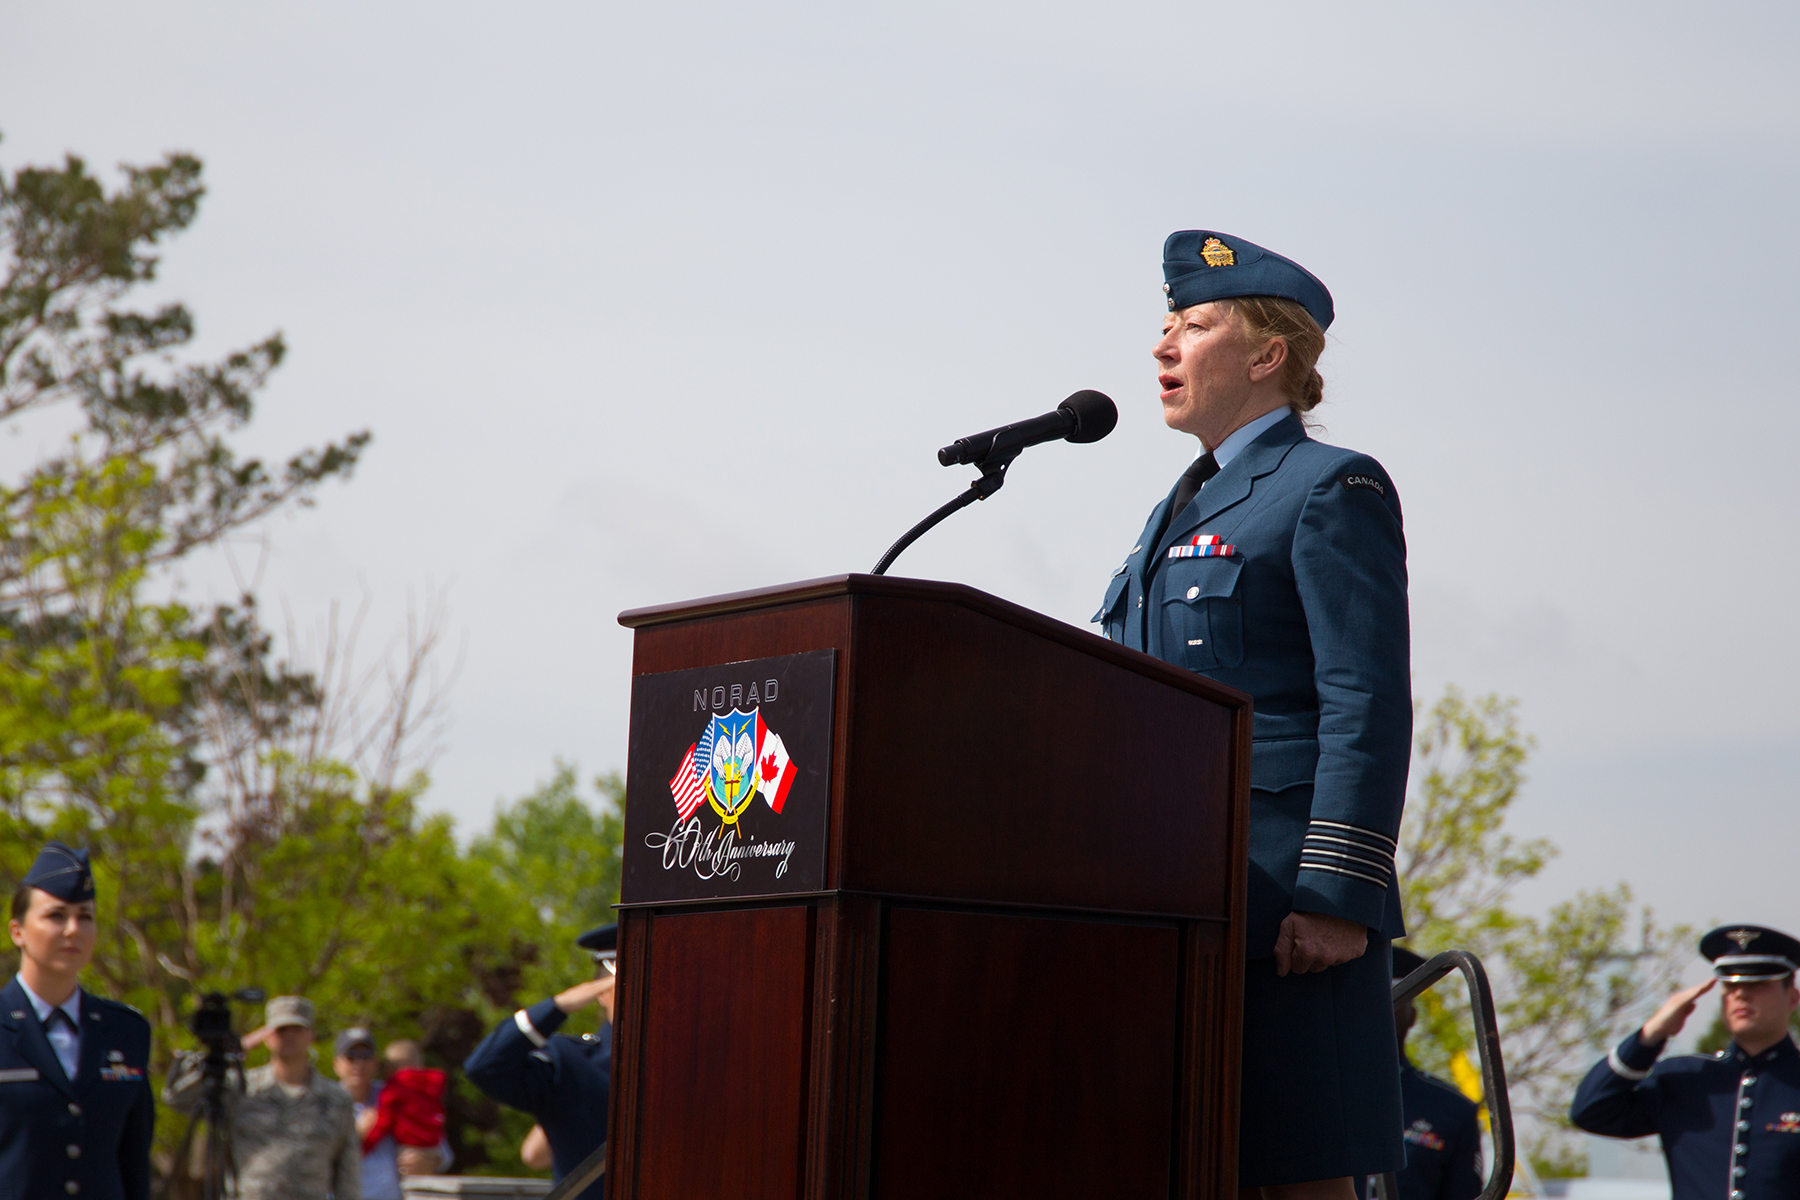 Royal Canadian Air Force Honorary Colonel Loreena McKennitt sings the Canada and U.S. National Anthems during the unveiling ceremony for a memorial cairn outside the NORAD and USNORTHCOM headquarters building at Peterson Air Force Base, Colorado, on May 11, 2018. The cairn honors the Canadian service men and women who died while serving at NORAD. PHOTO: U.S. DoD, N&NC Public Affairs